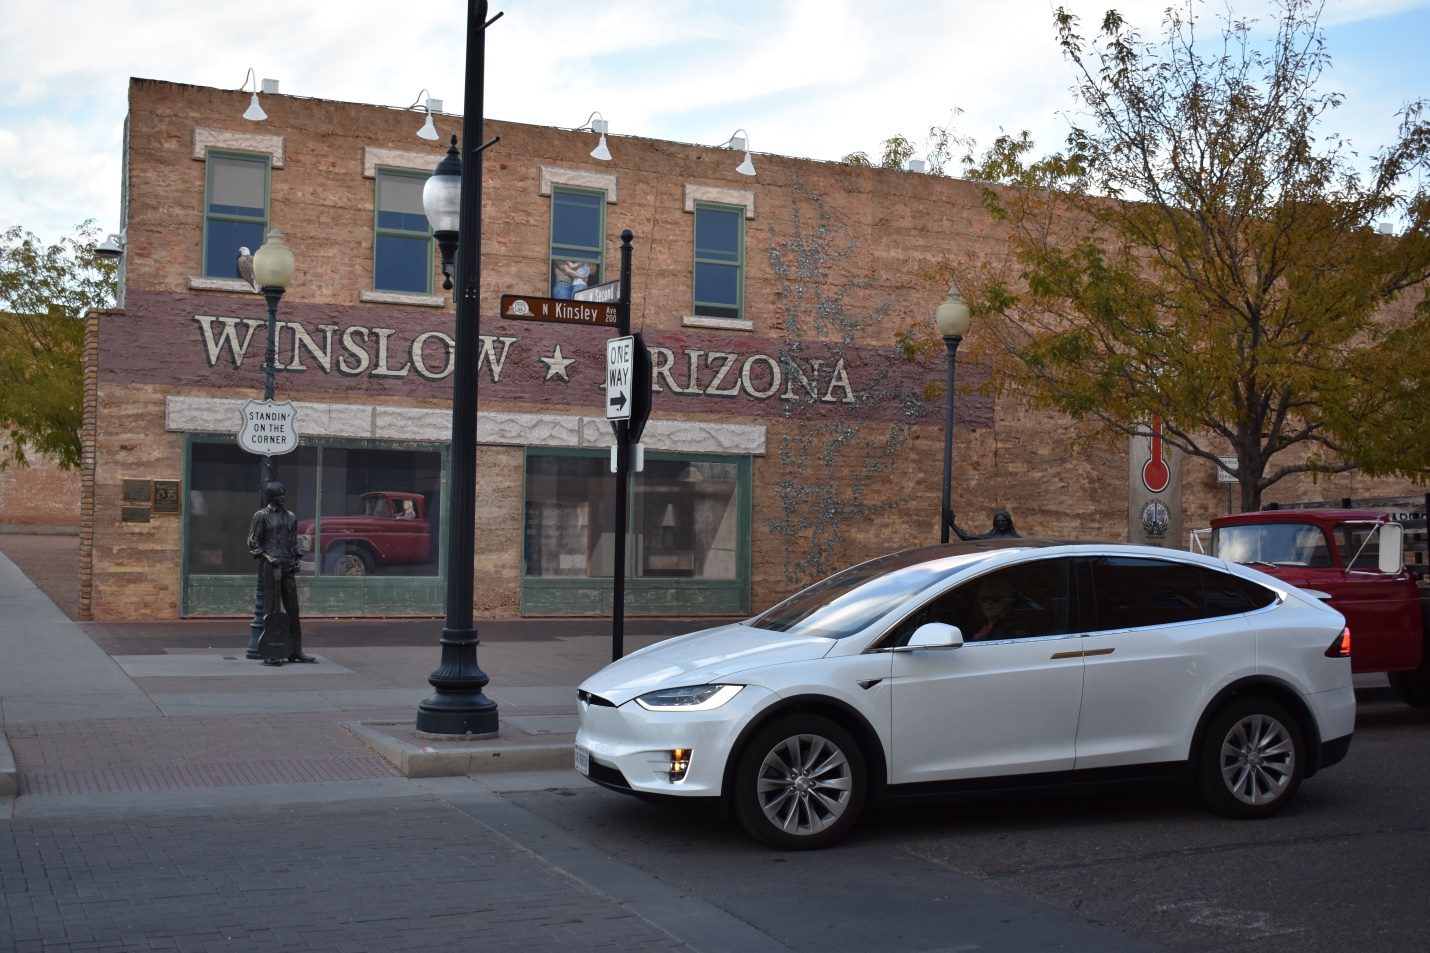 Ellie Standin' on the Corner in Winslow, Arizona